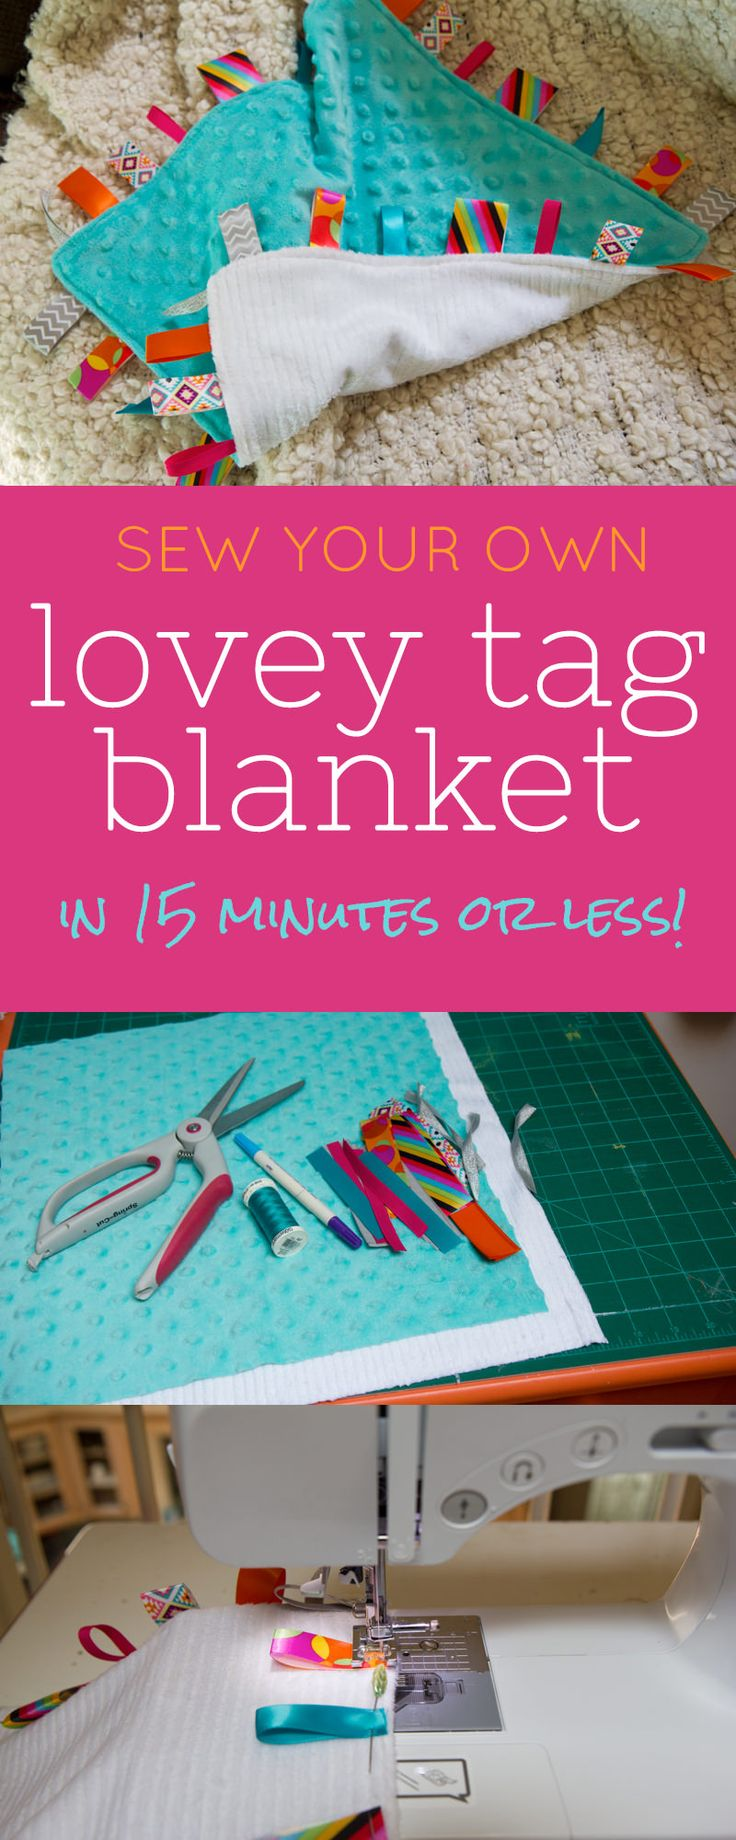 Tutorial: DIY Lovey Tag Blanket